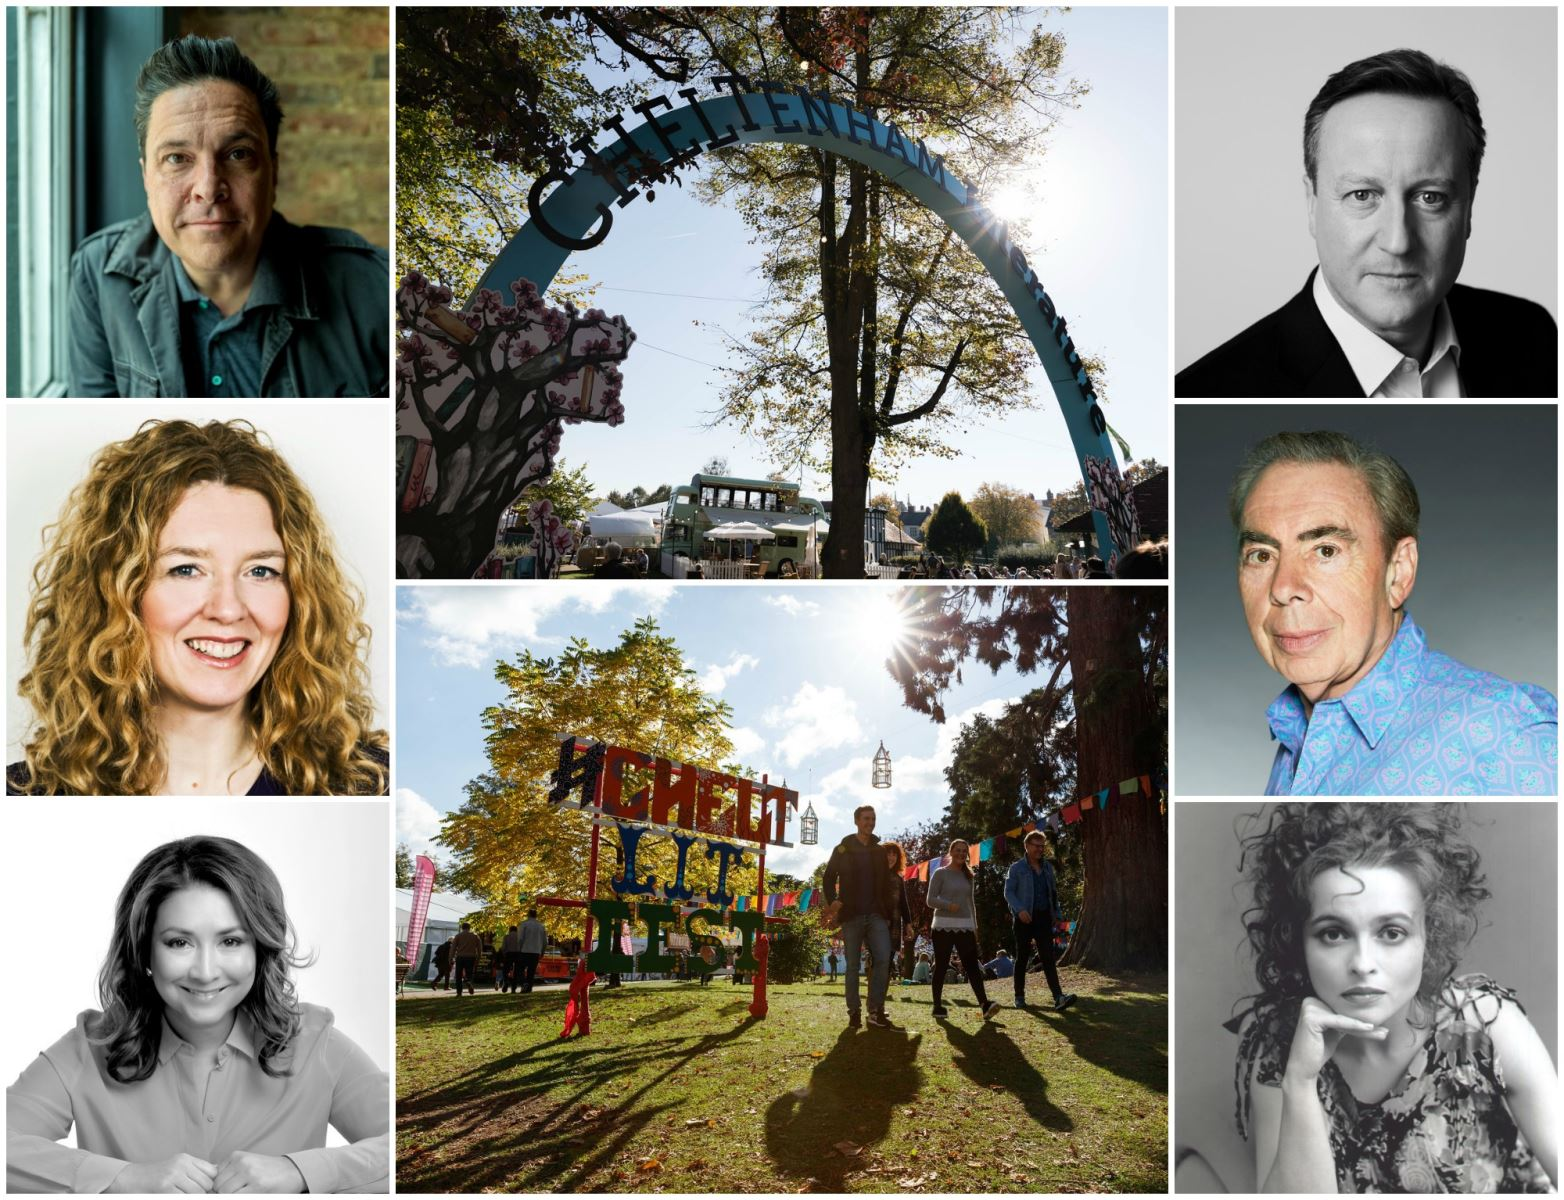 Selection of images of Cheltenham Literature Festival speakers